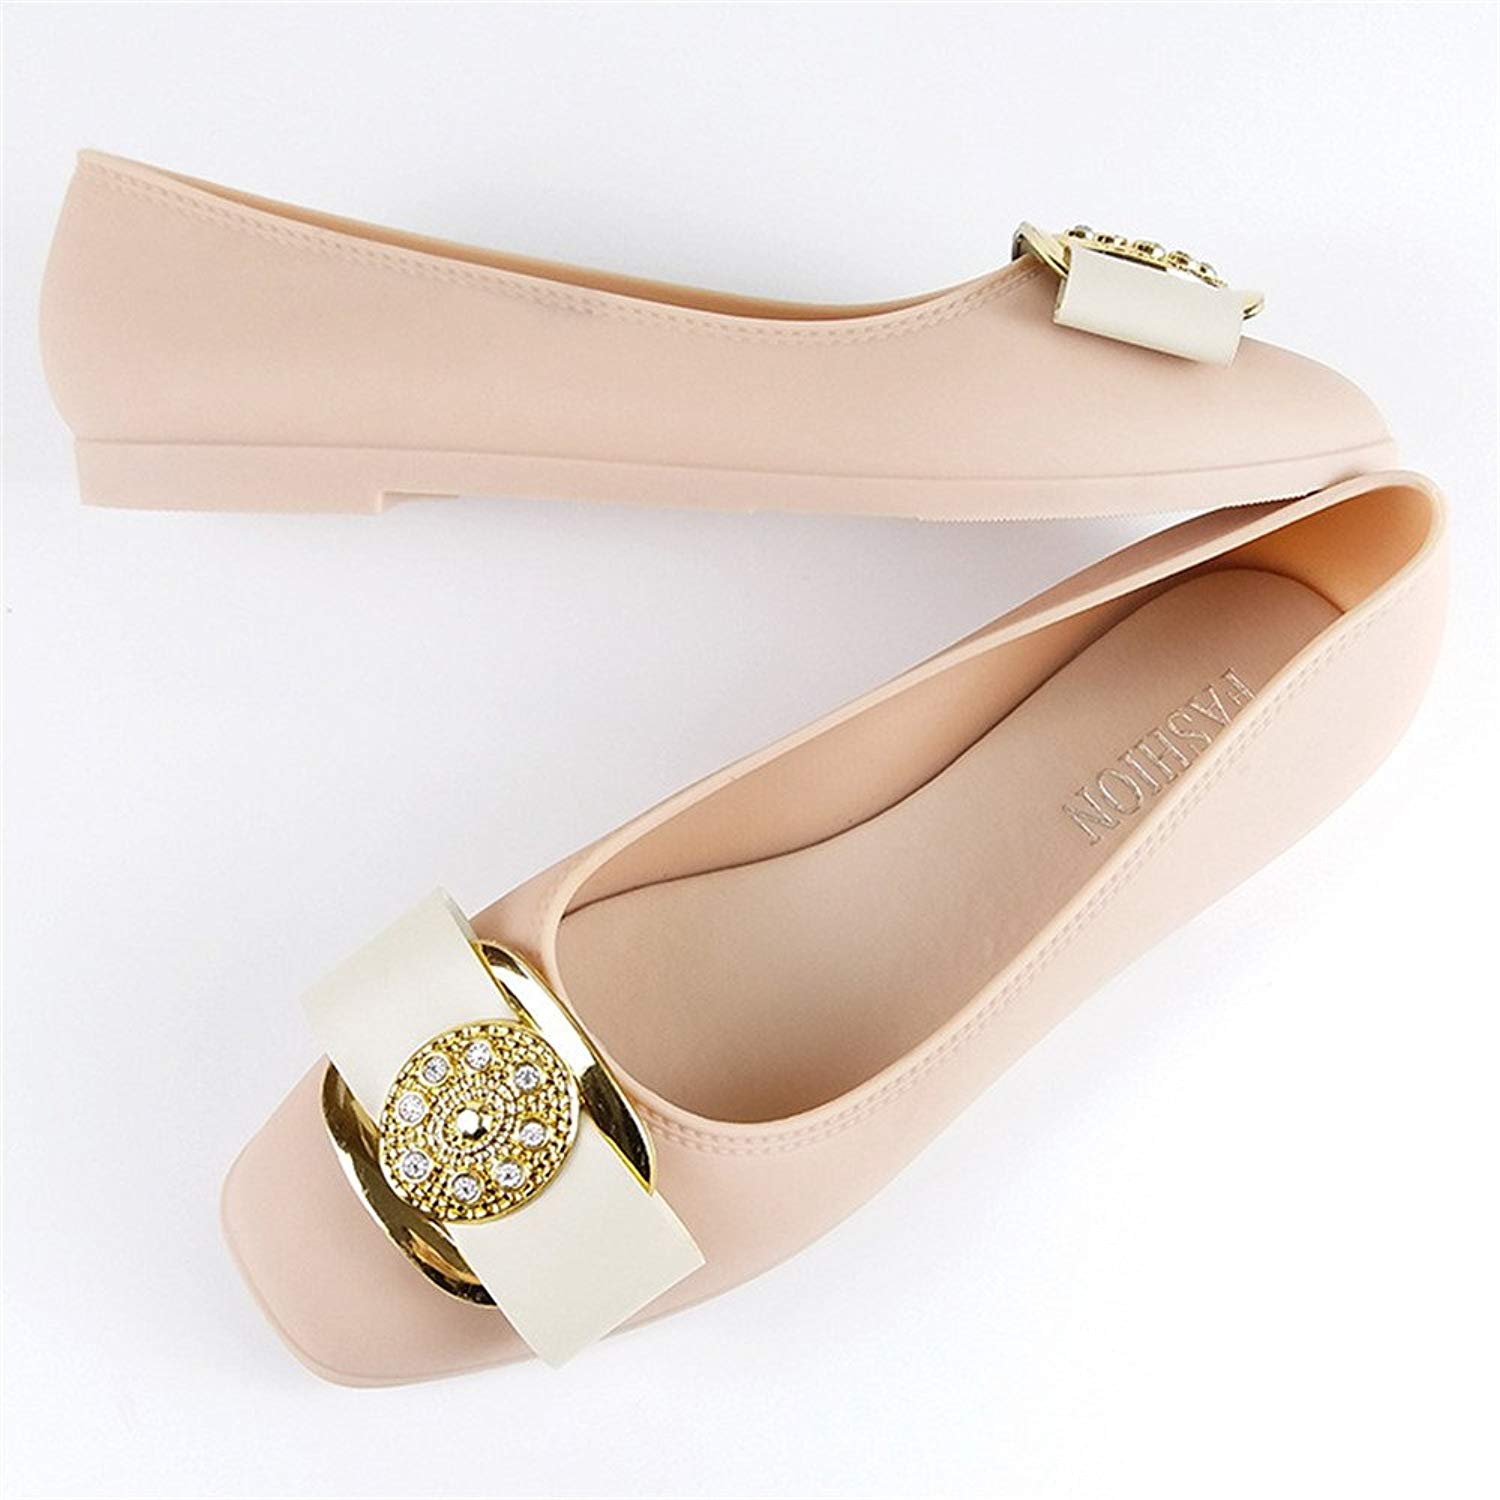 46ef4e787 Get Quotations · PRETTYHOMEL Womens Jelly Shoes Classic Comfortable Round  Toe Slip On Ballet Everyday Flats